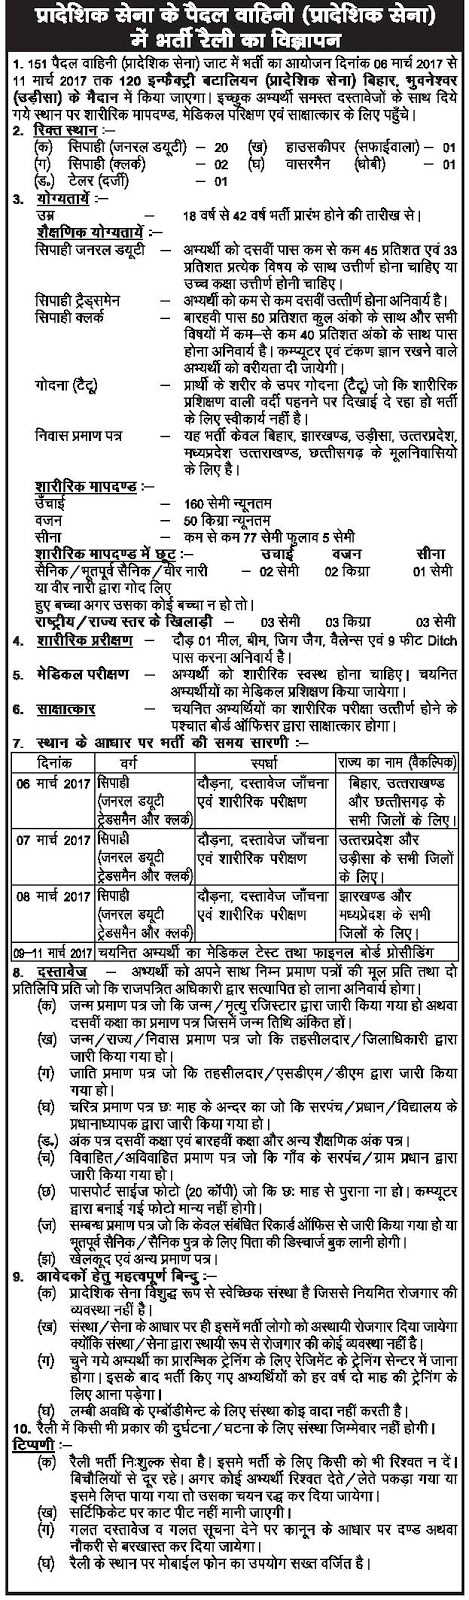 Territorial Army Recruitment Rally 2017 Soldier,Tailor,Housekeeper,Washerman 25 posts  6th March to 11th March 2017